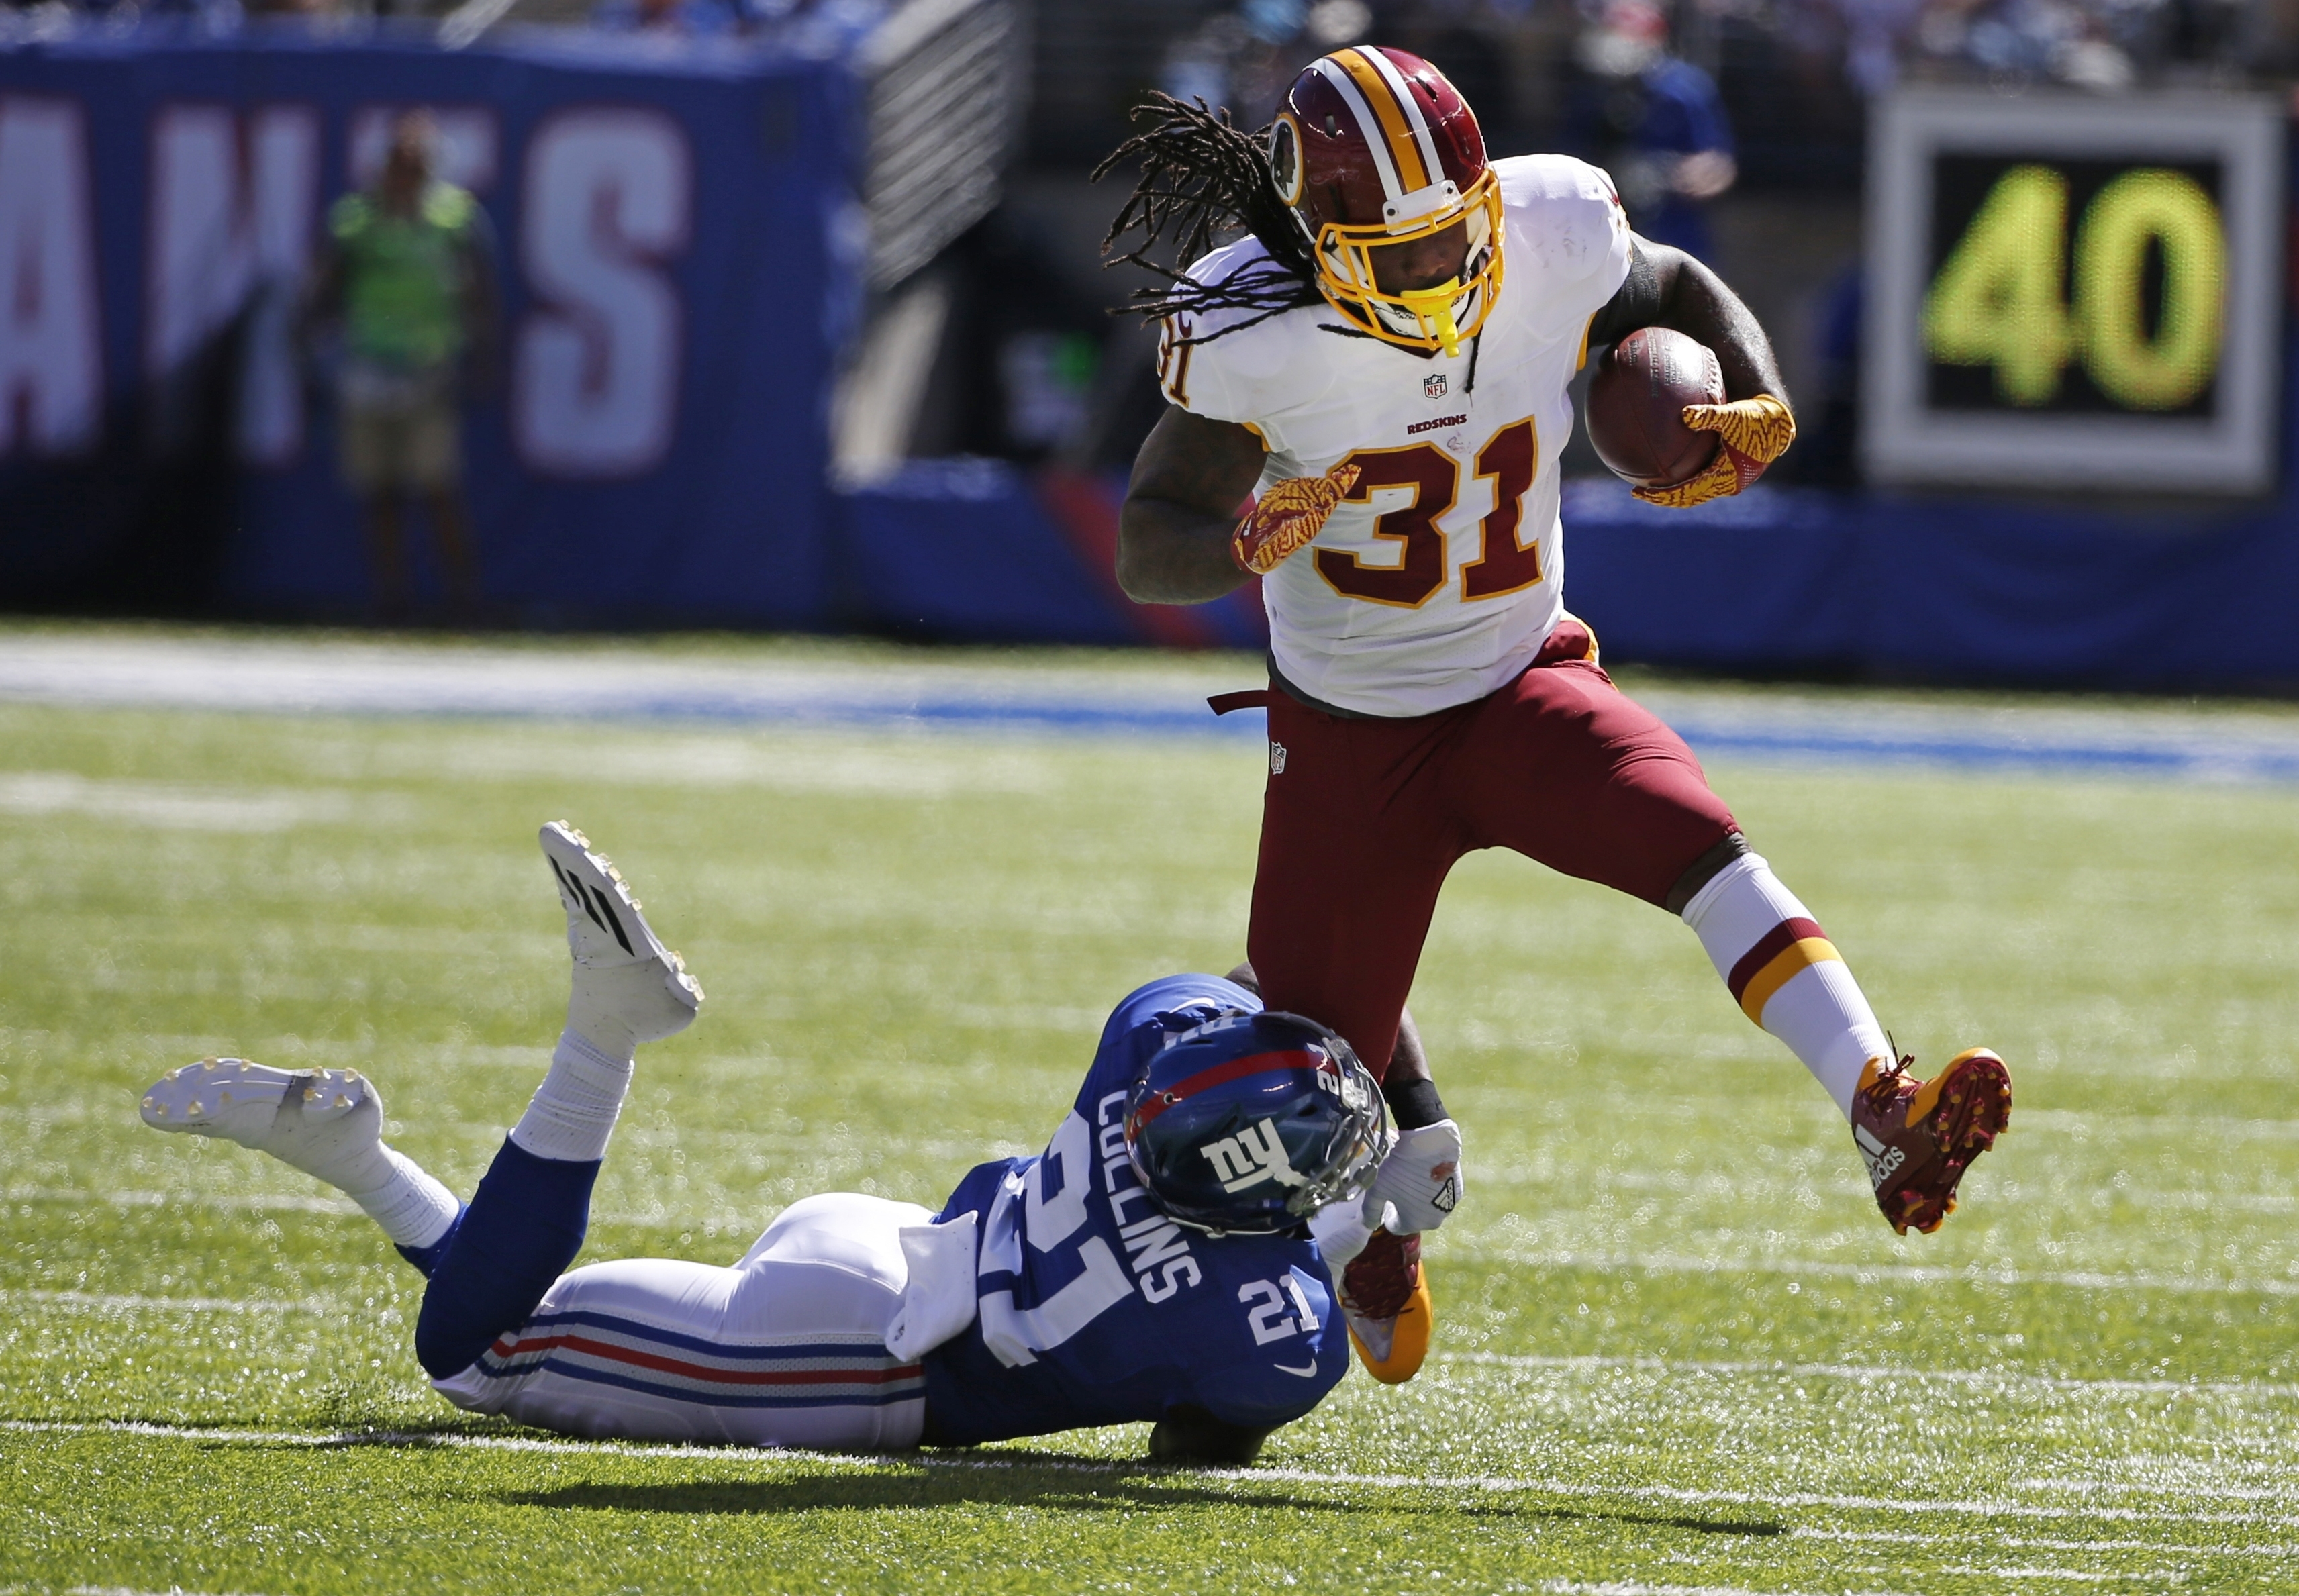 New York Giants' Landon Collins (21) tackles Washington Redskins' Matt Jones (31) during the first half of an NFL football game Sunday, Sept. 25, 2016, in East Rutherford, N.J. (AP Photo/Kathy Willens)